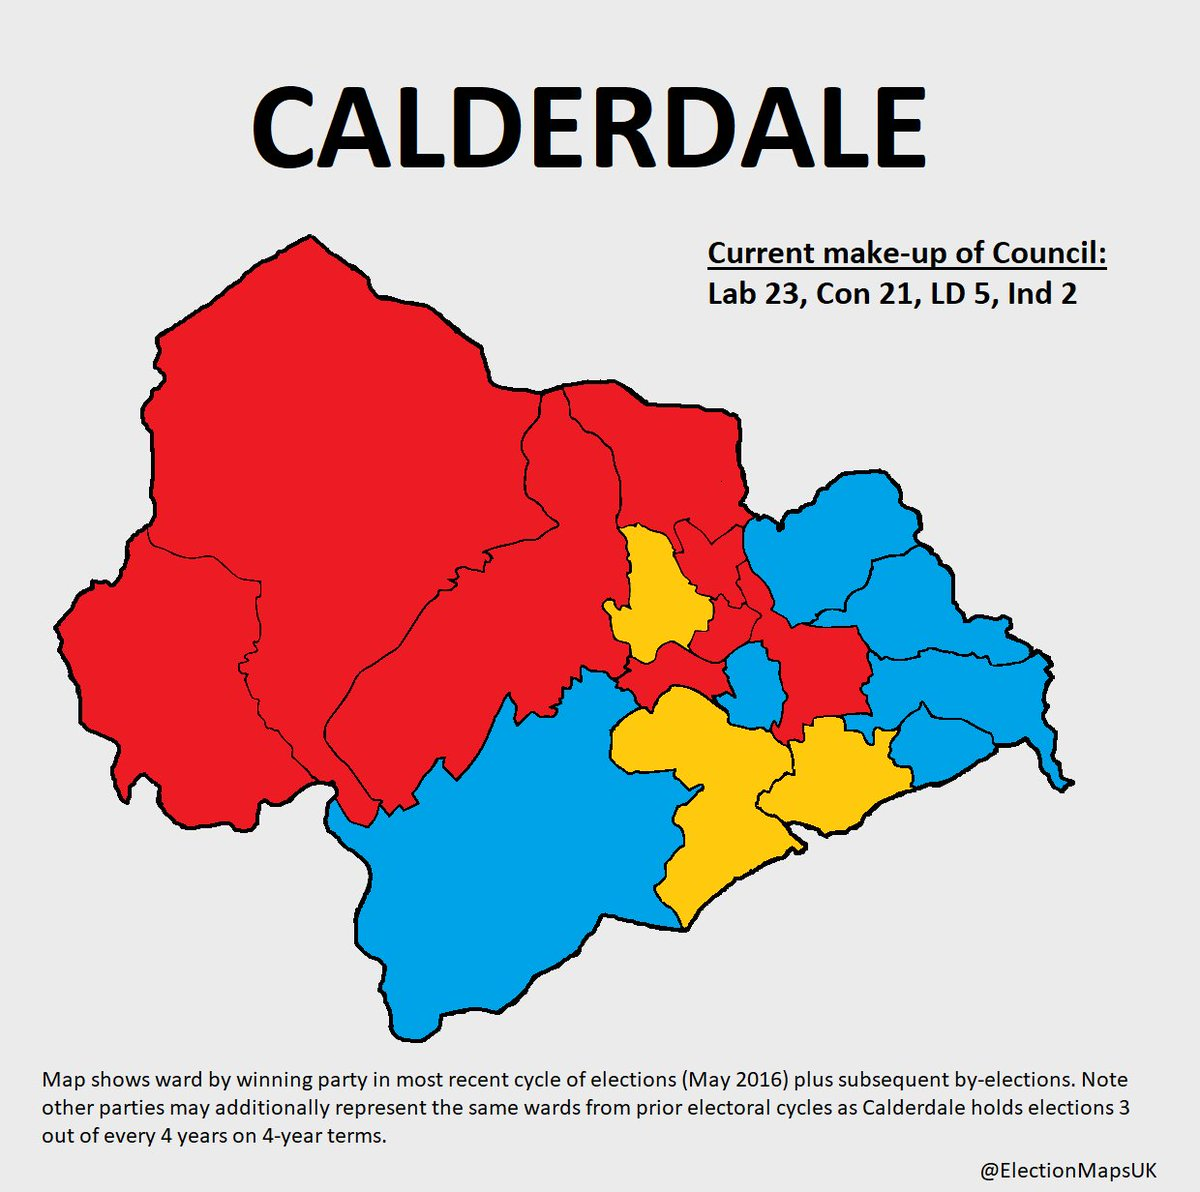 Election Maps Uk On Twitter Calderdale Calderdale Has No